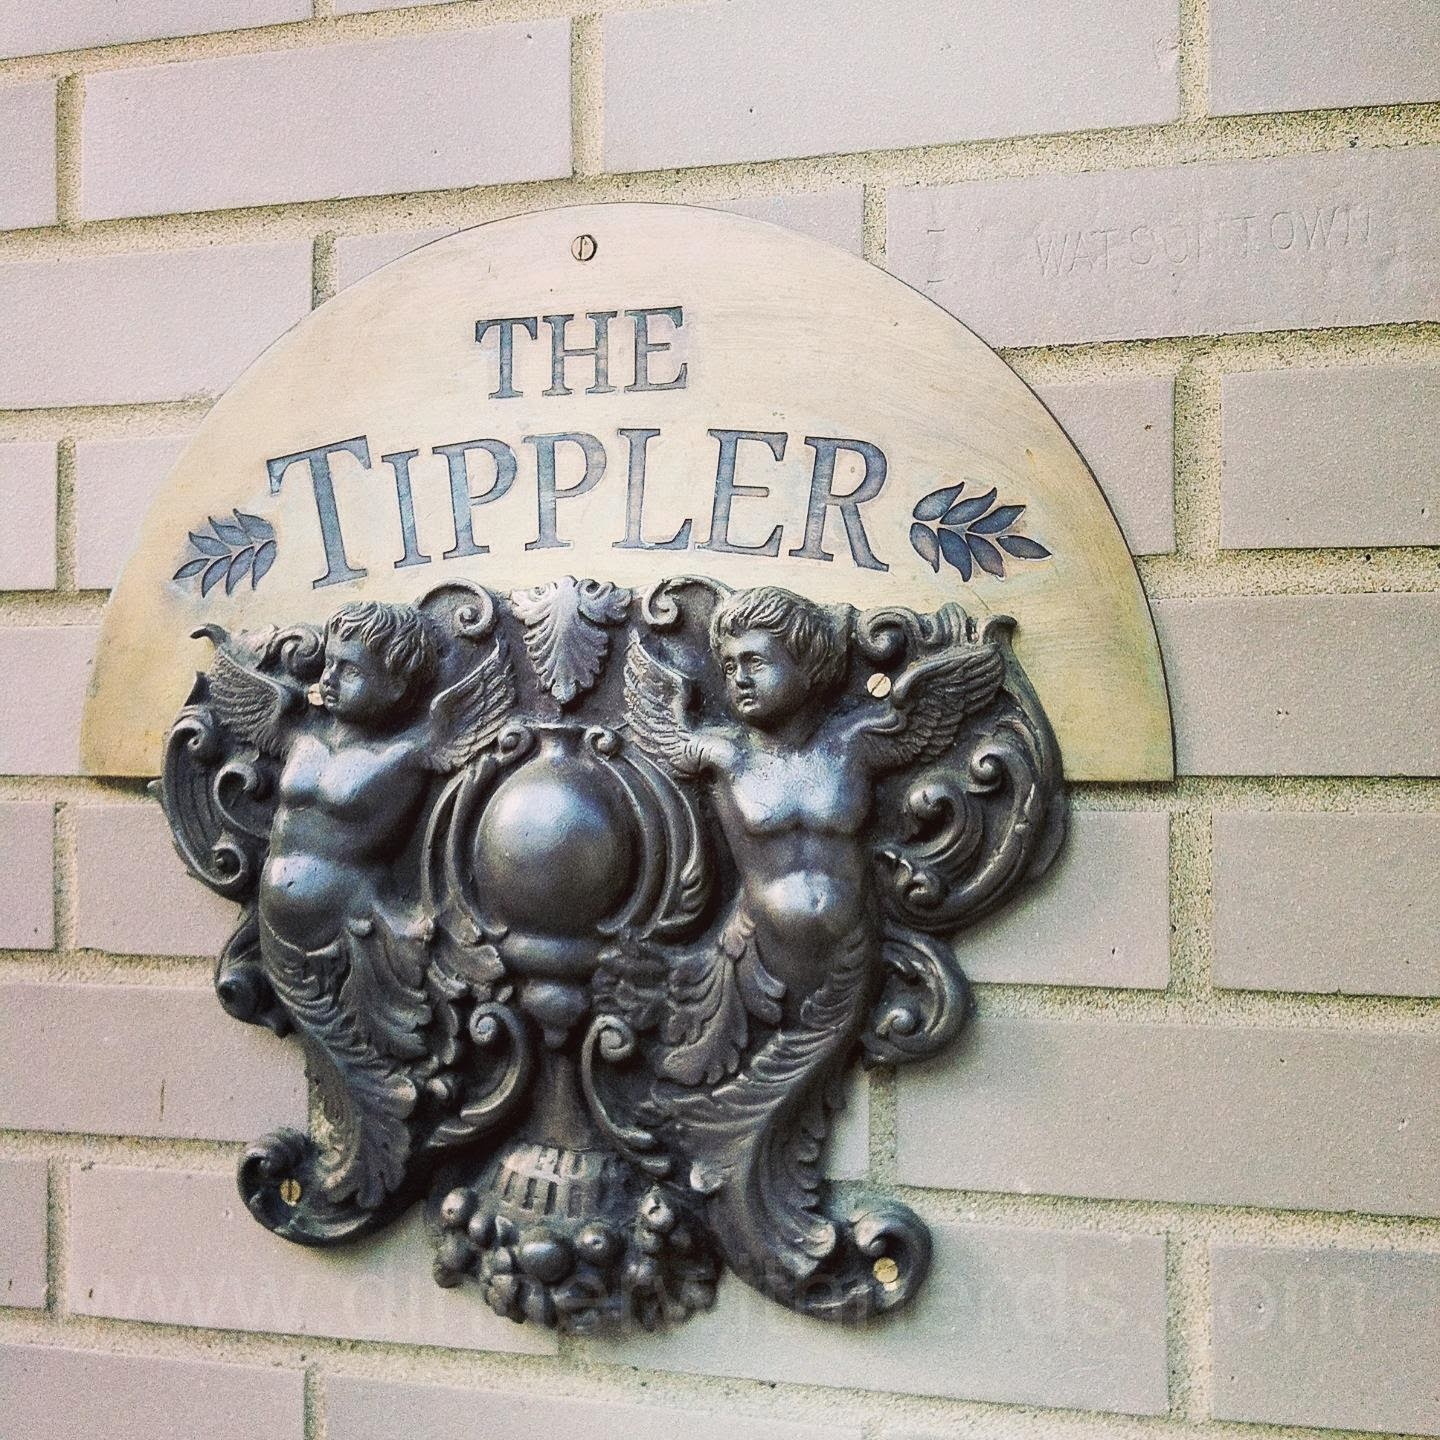 Music City Tippler